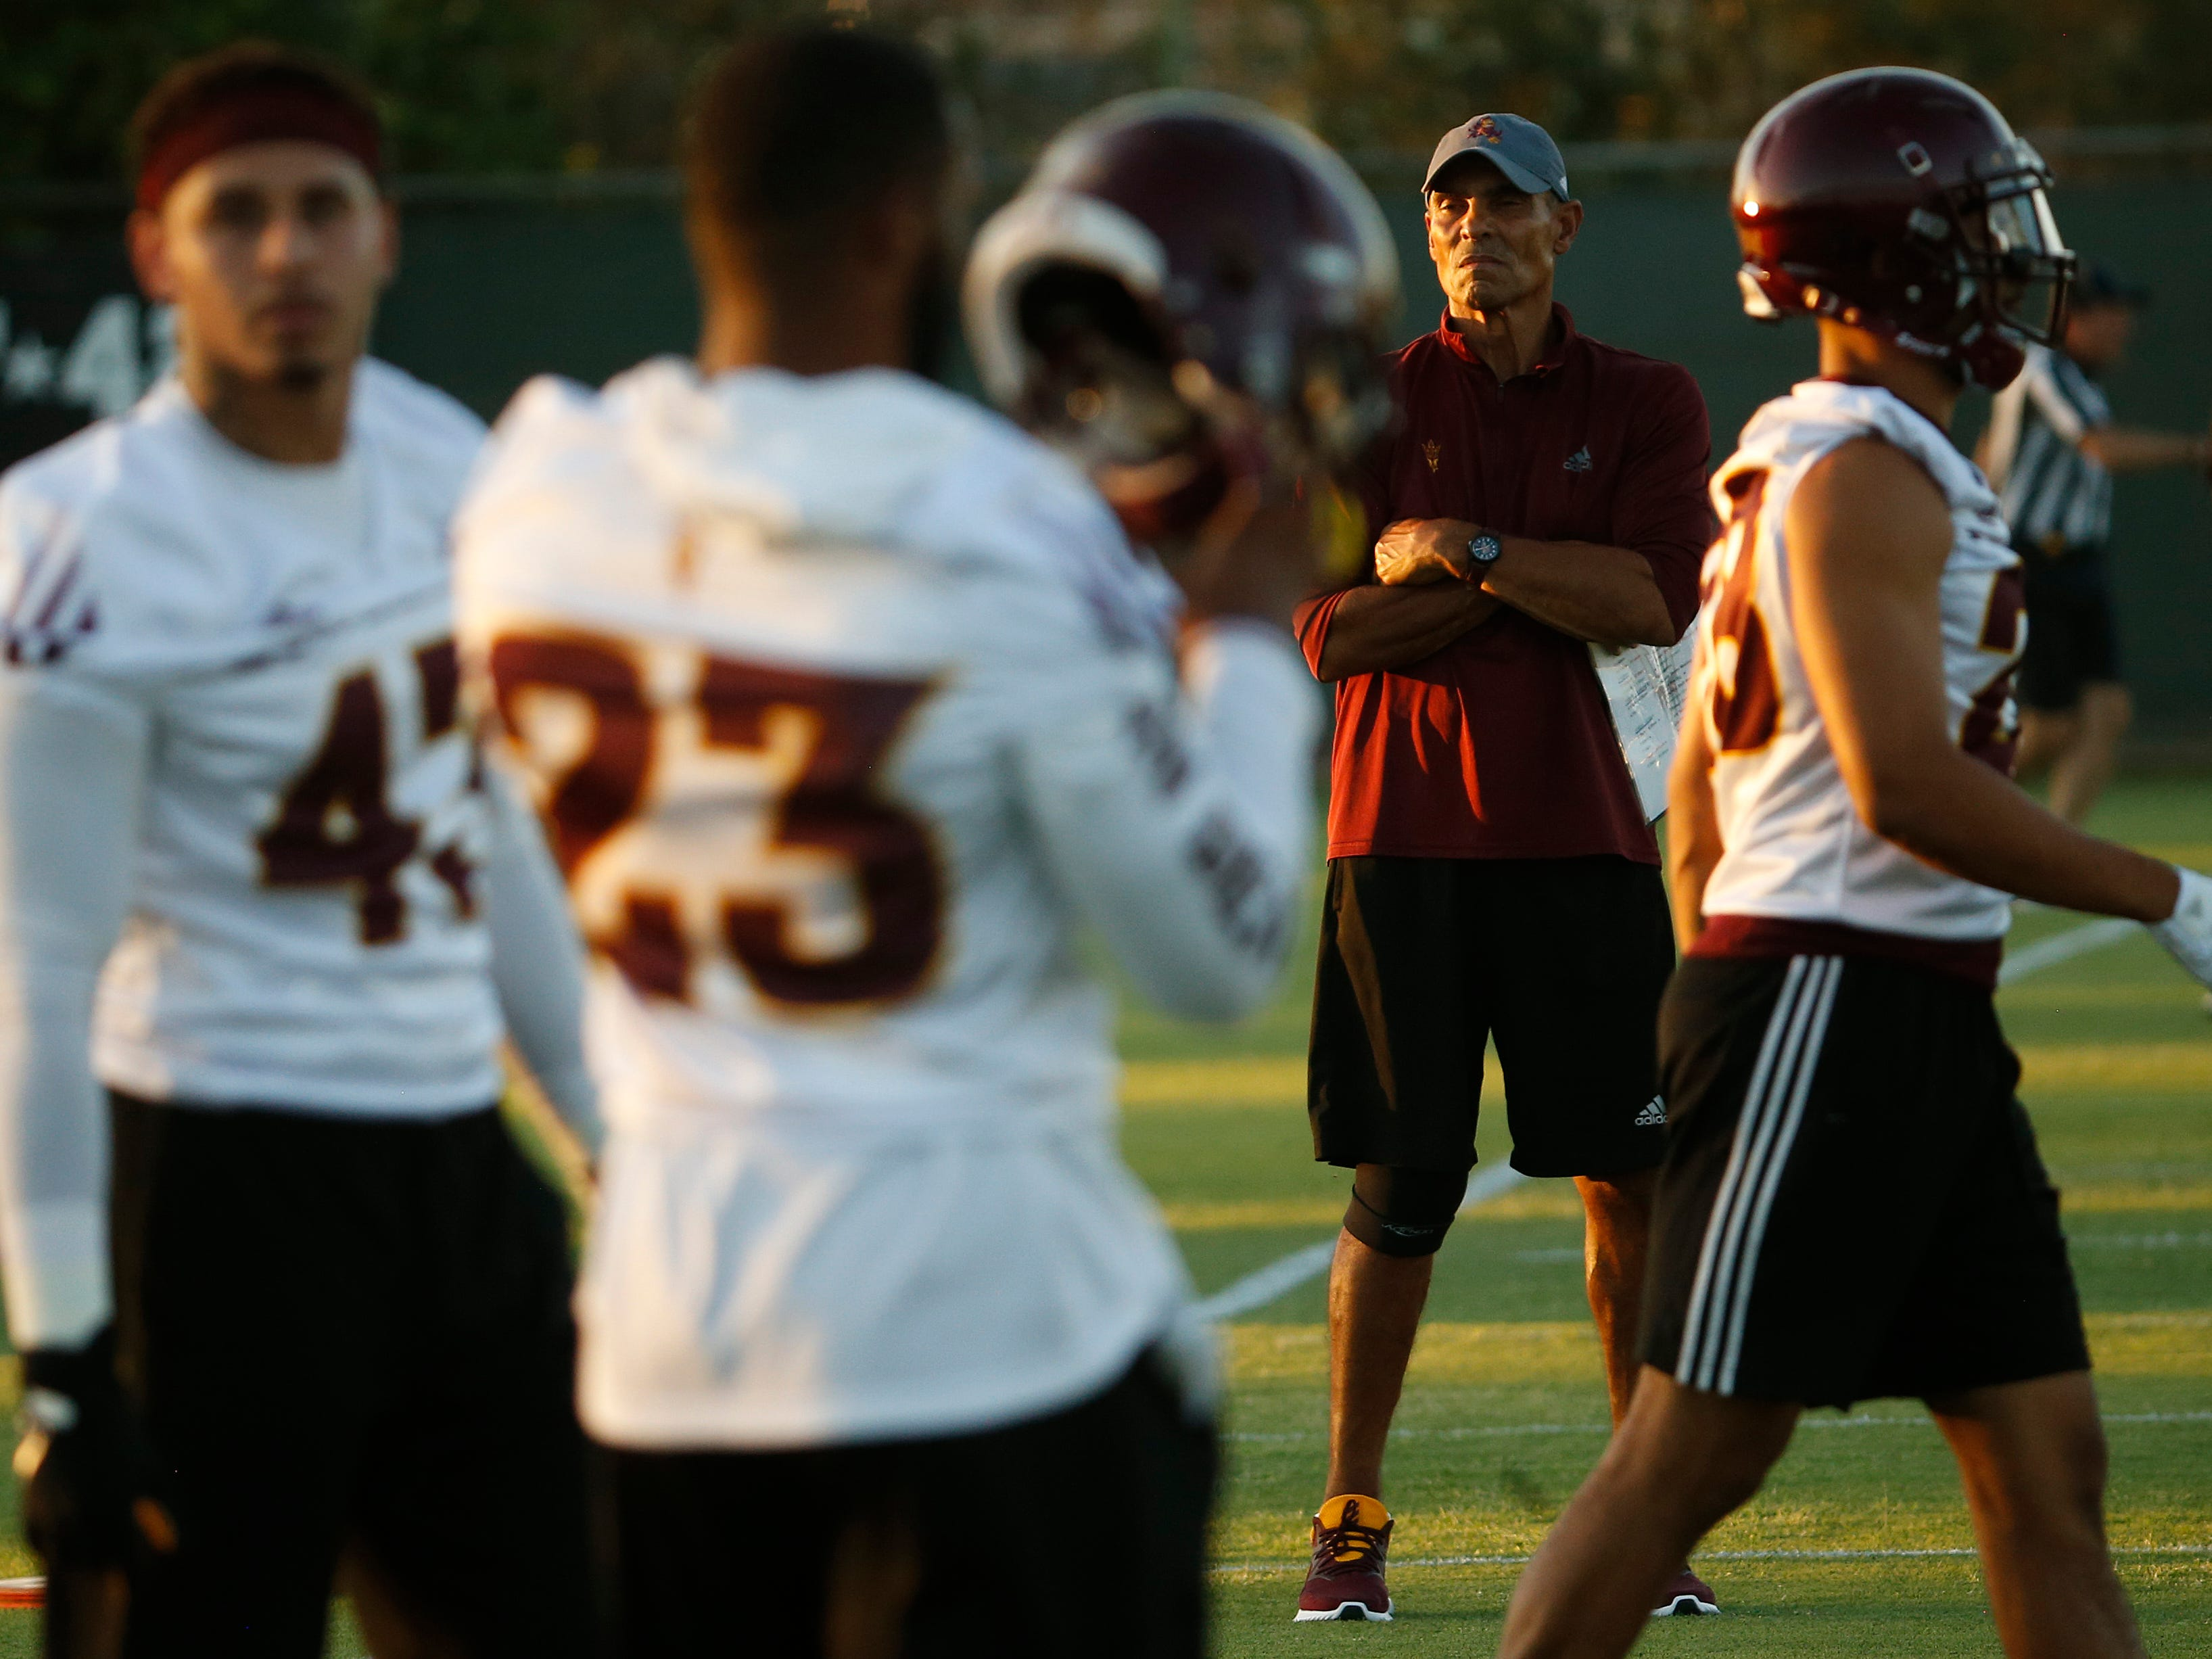 ASU head coach Herm Edwards watches his team during practice at Kajikawa Practice Fields in Tempe, Ariz. on Aug. 3, 2018.